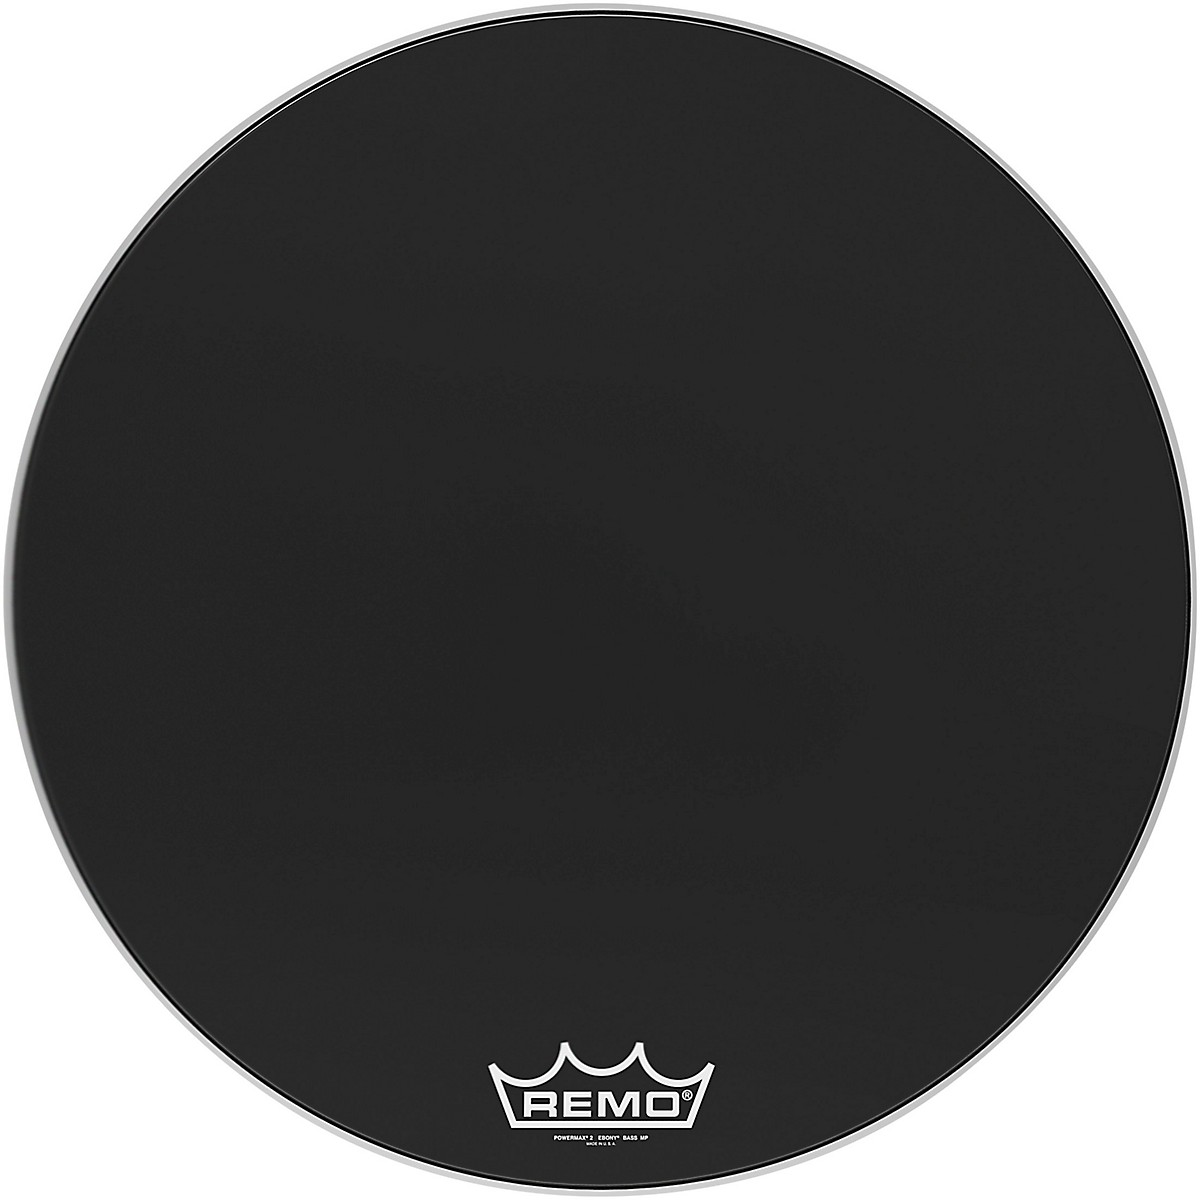 Remo Powermax 2 Ebony Crimplock Bass Drum Head